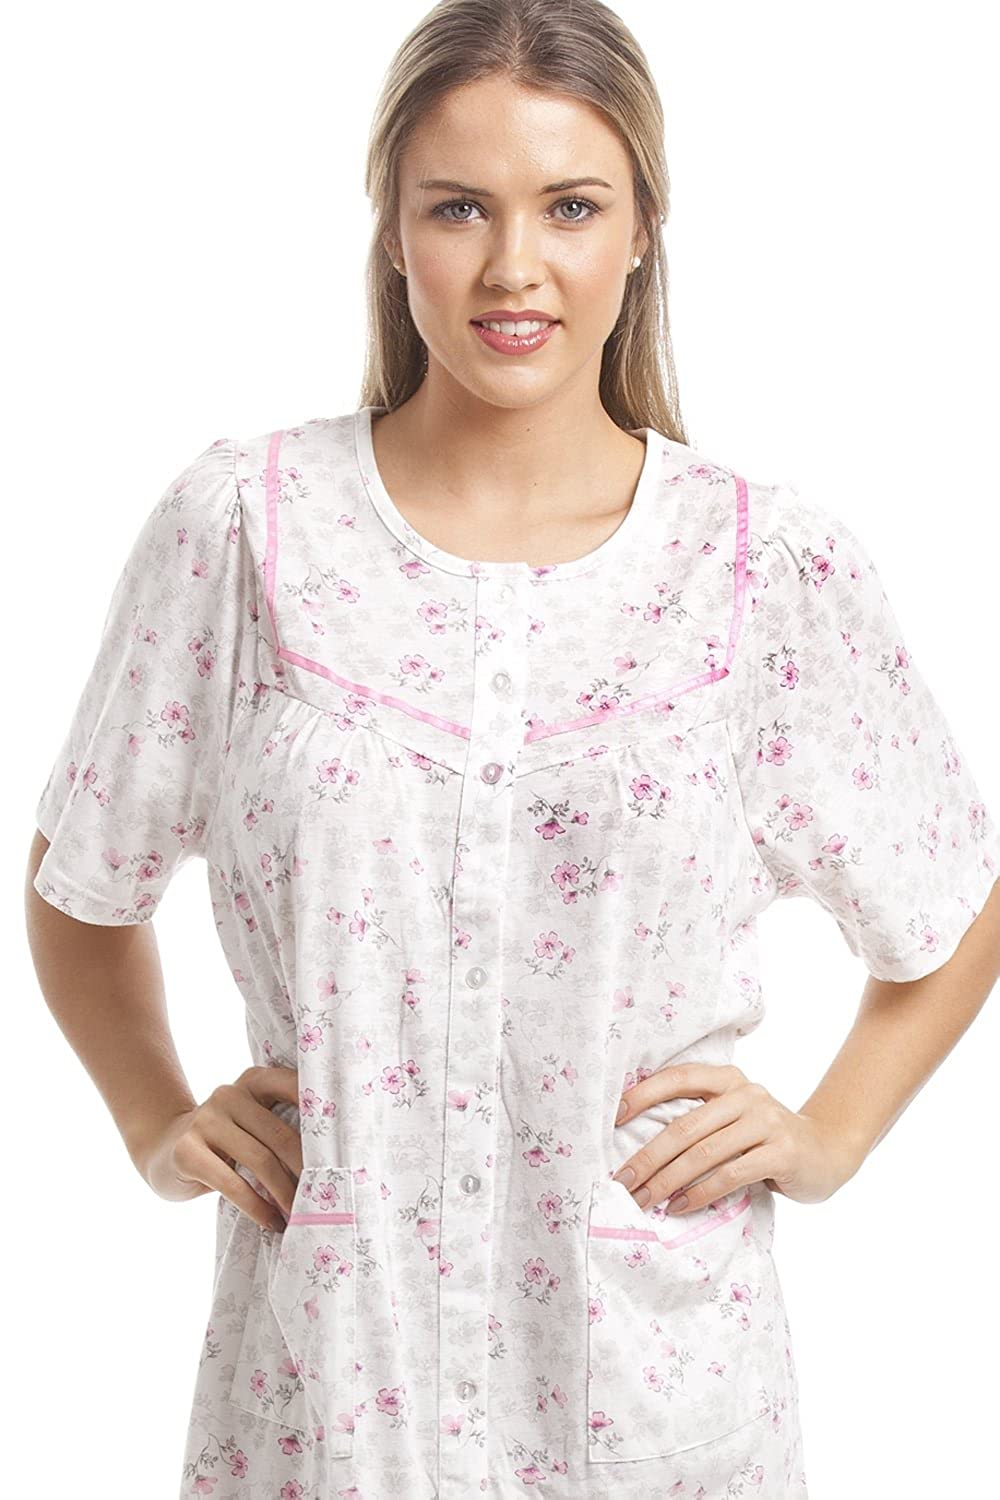 afc3929c5b Camille Womens Ladies Classic Pink Floral Print White Short Sleeve Button  Up Nightdress 10 12  Camille  Amazon.co.uk  Clothing